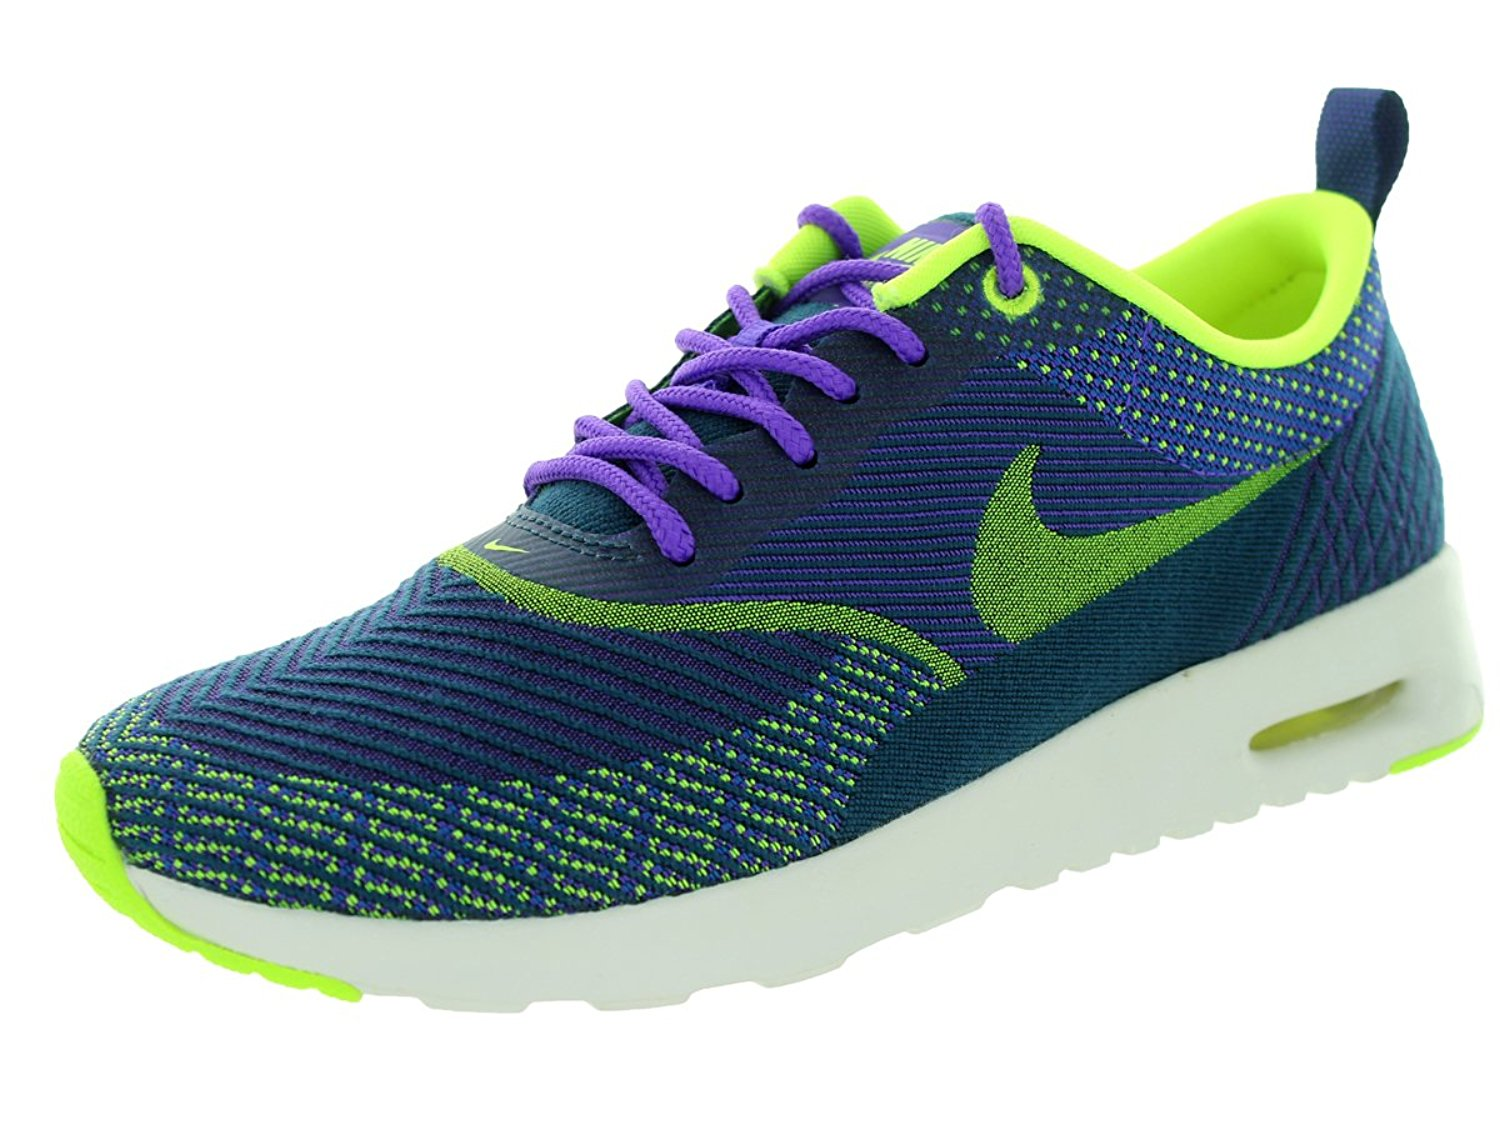 f55f2f3ca9 Get Quotations · Nike Women's Nike Air Max Thea Jcrd Running Shoe